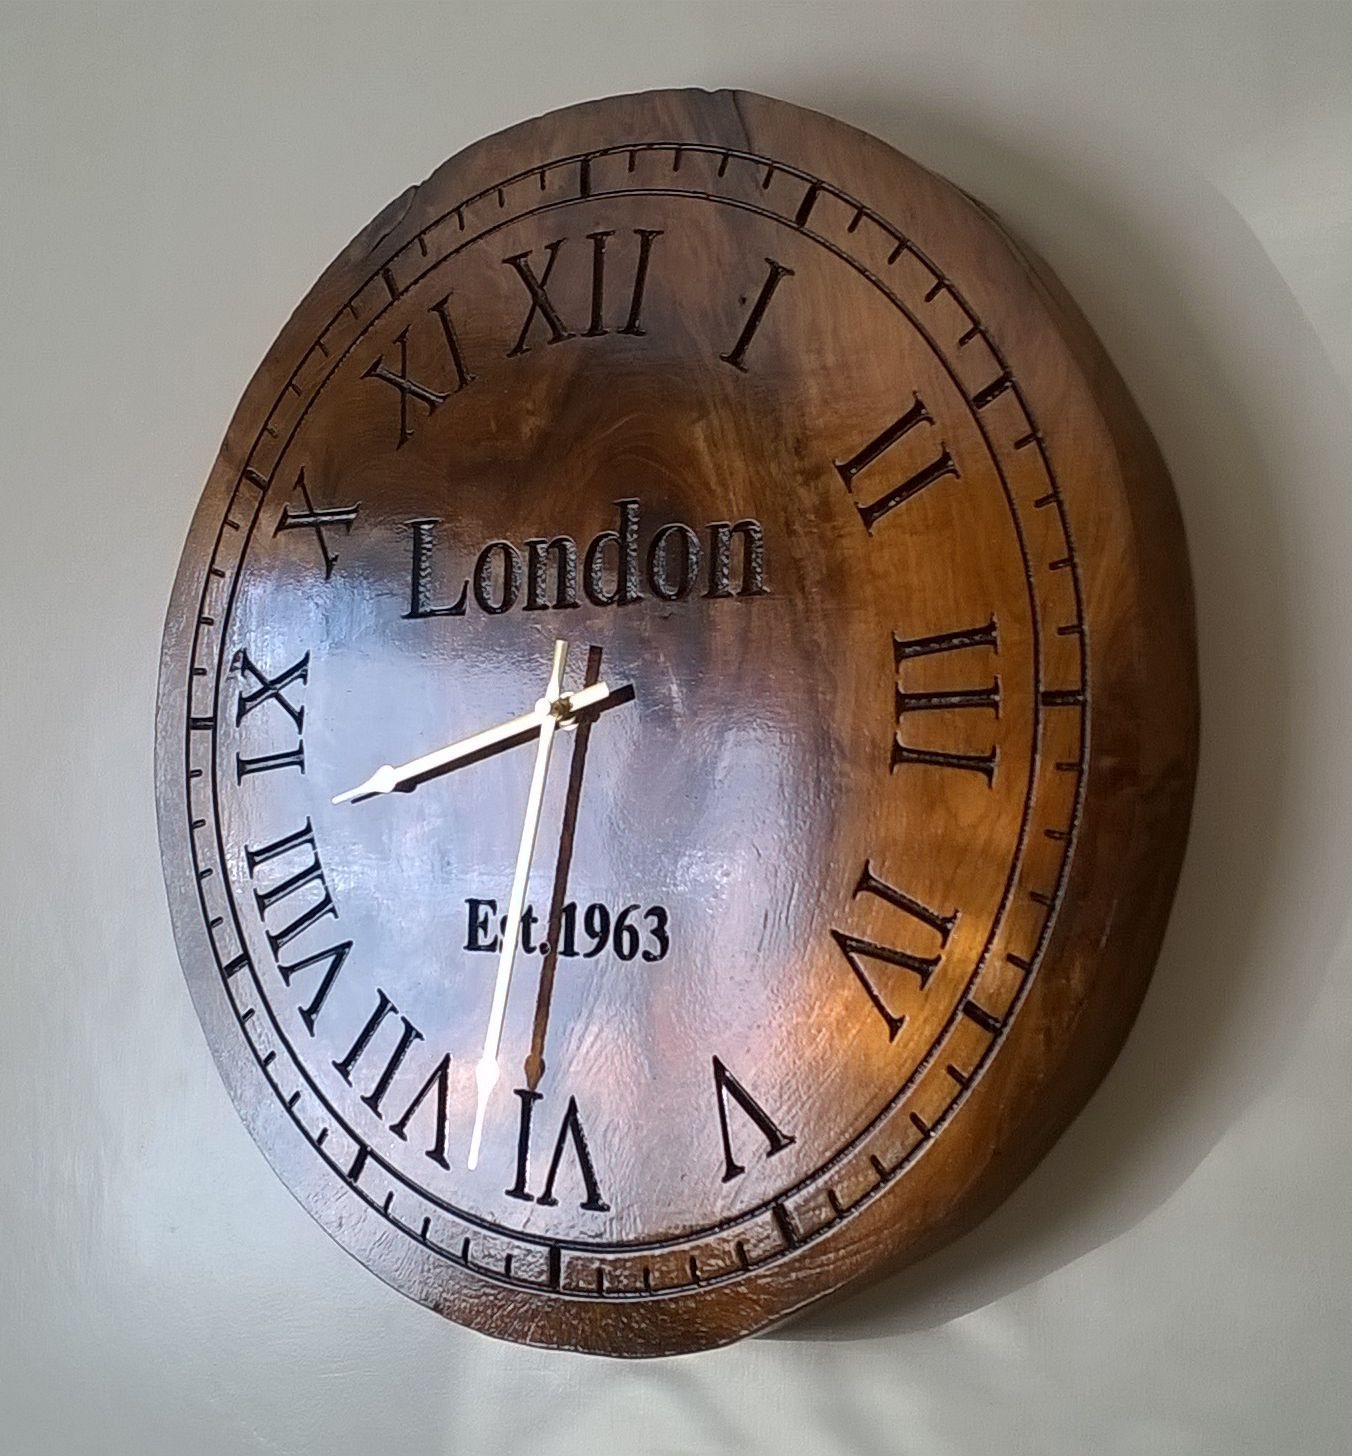 This is the clock I made on